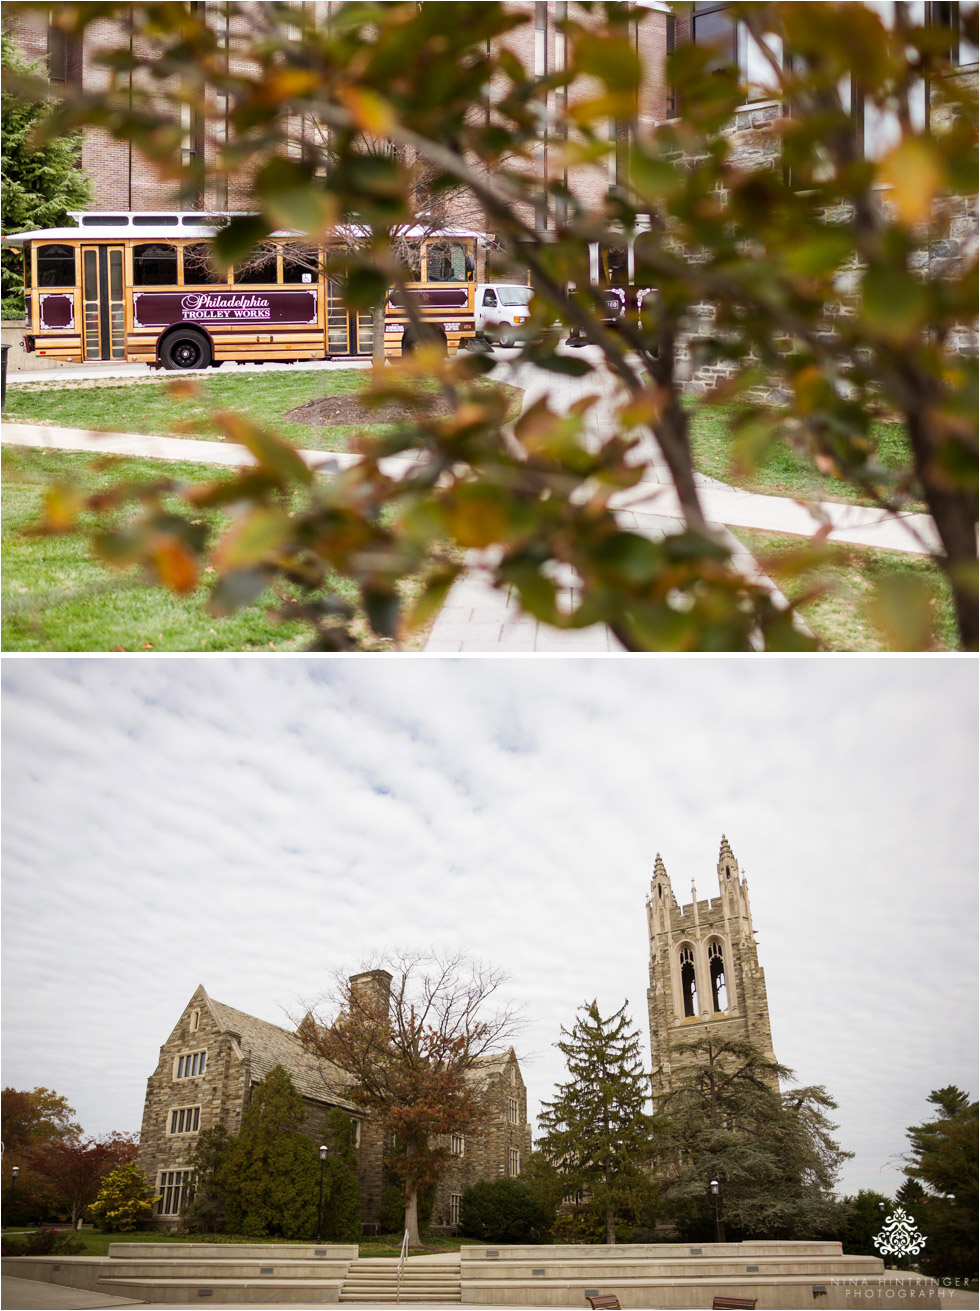 Saint Josephs University campus in Philadelphia, Pennsylvania - Blog of Nina Hintringer Photography - Wedding Photography, Wedding Reportage and Destination Weddings